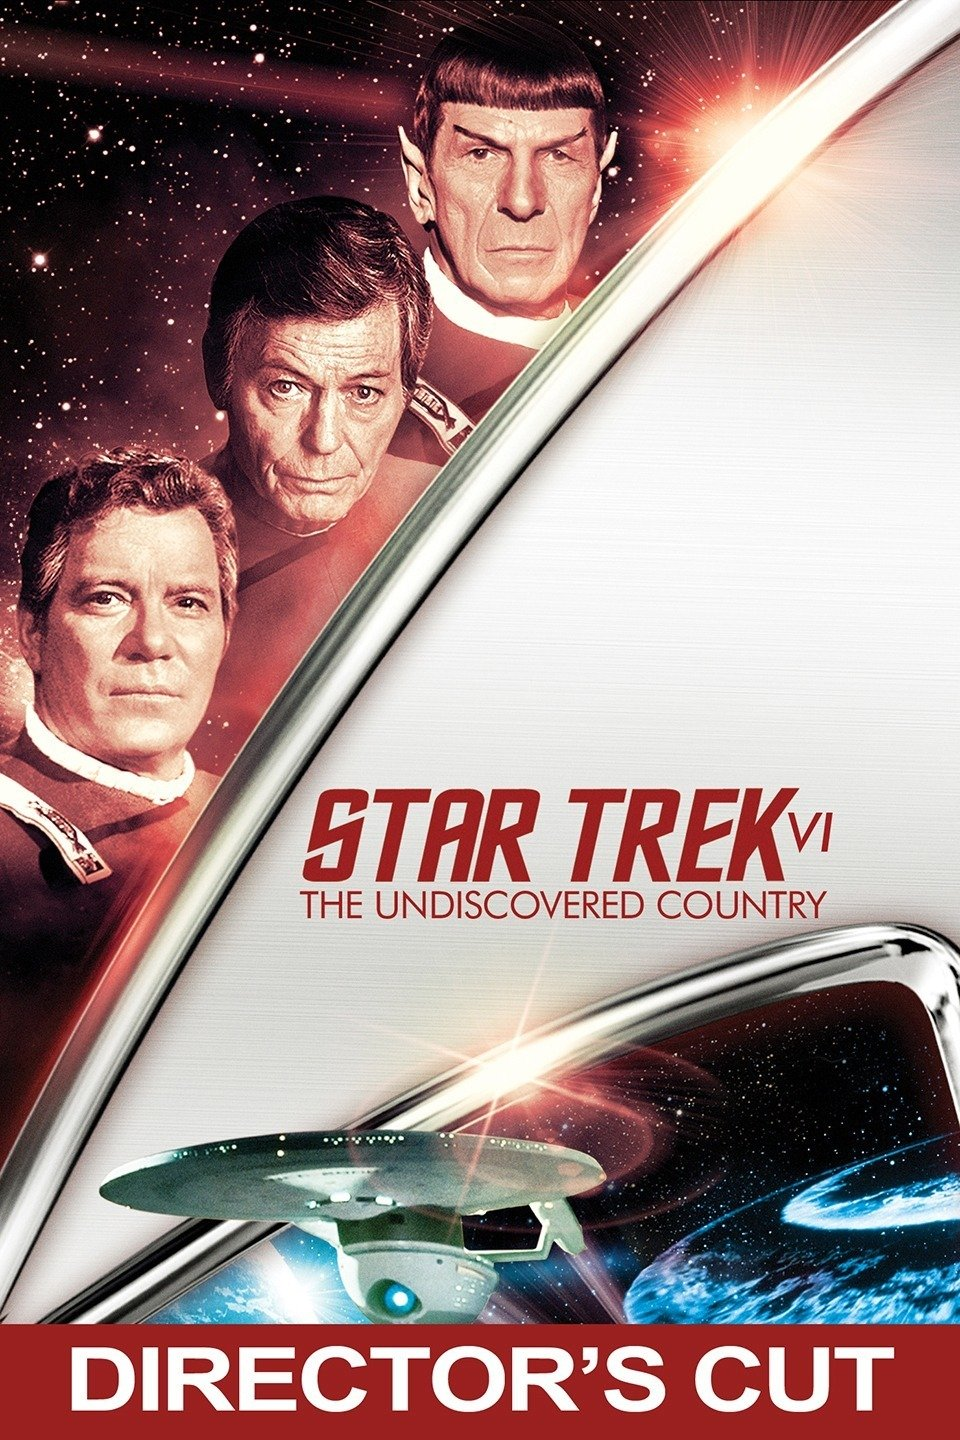 Star Trek VI: The Undiscovered Country-Star Trek VI: The Undiscovered Country